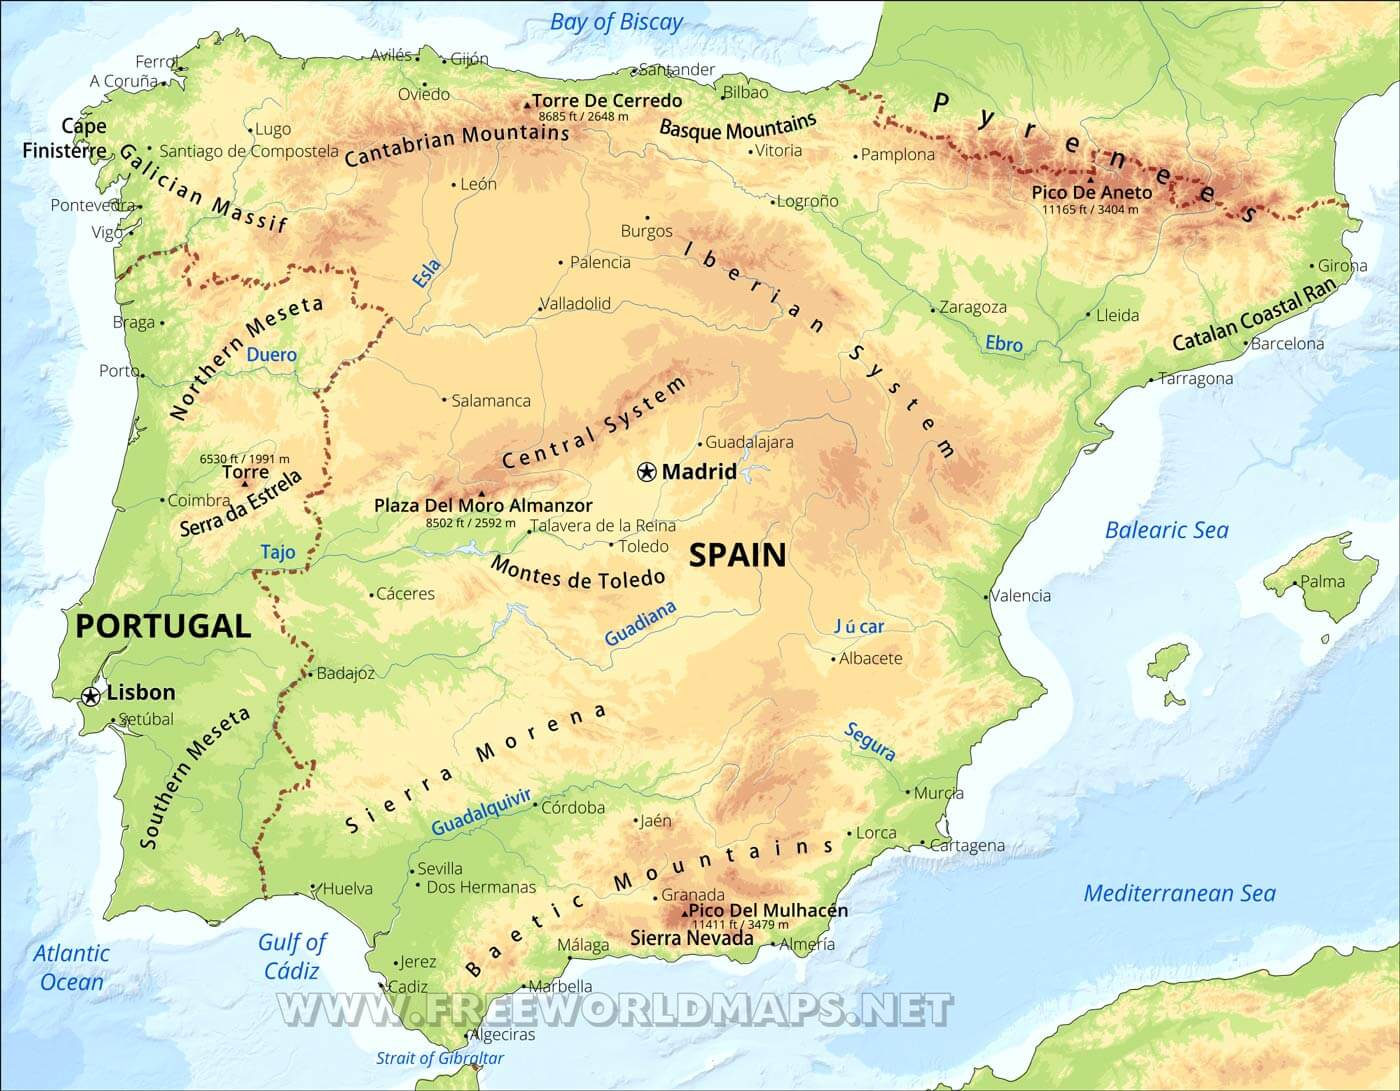 Iberian Peninsula map on spanish language, amazon river on world map, rift valley on world map, red sea on world map, bering strait on world map, middle east on world map, black sea on world map, russia on world map, black sea, indonesia on world map, rock of gibraltar, italian peninsula, india on world map, malay peninsula on world map, croatia on world map, strait of gibraltar on world map, spanish inquisition, korean peninsula on world map, indochina peninsula on world map, yucatan peninsula on world map, strait of gibraltar, scandinavian peninsula, jutland peninsula on world map, andes mountains on world map, mesoamerica world map, puget sound on world map,